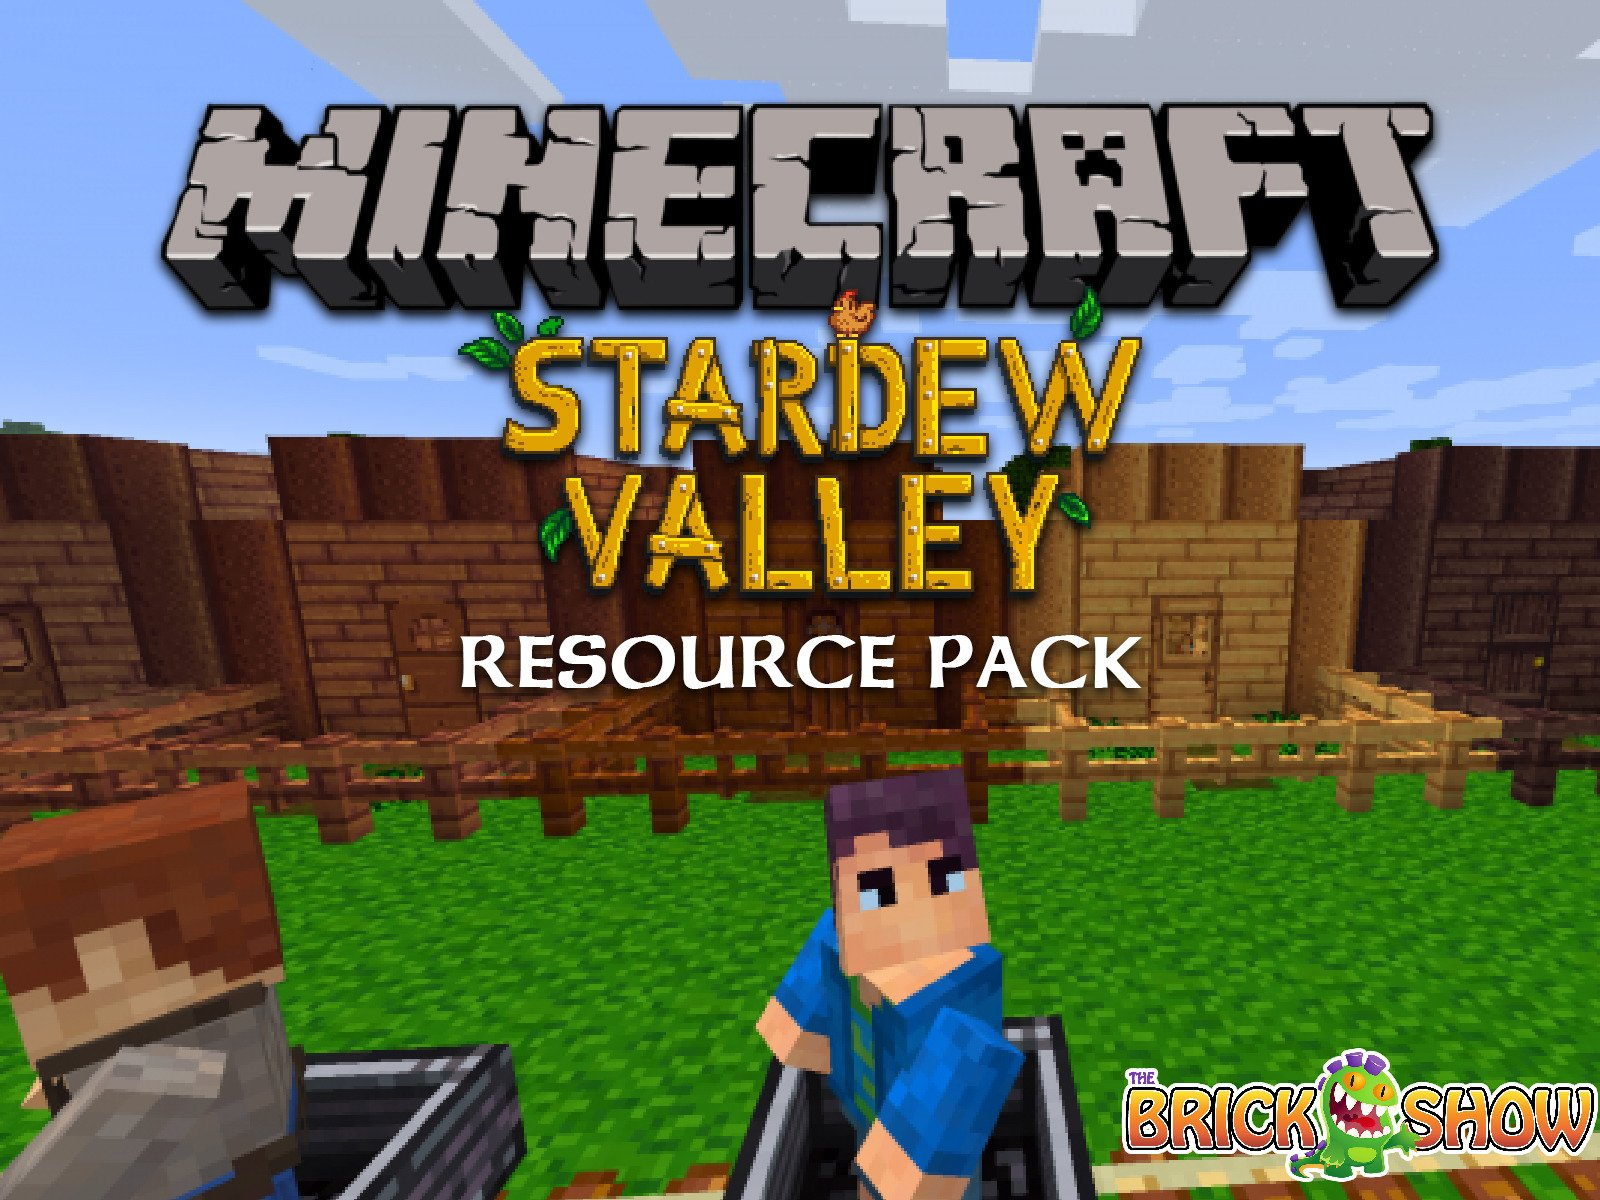 Clip: Minecraft Stardew Valley Resource Pack